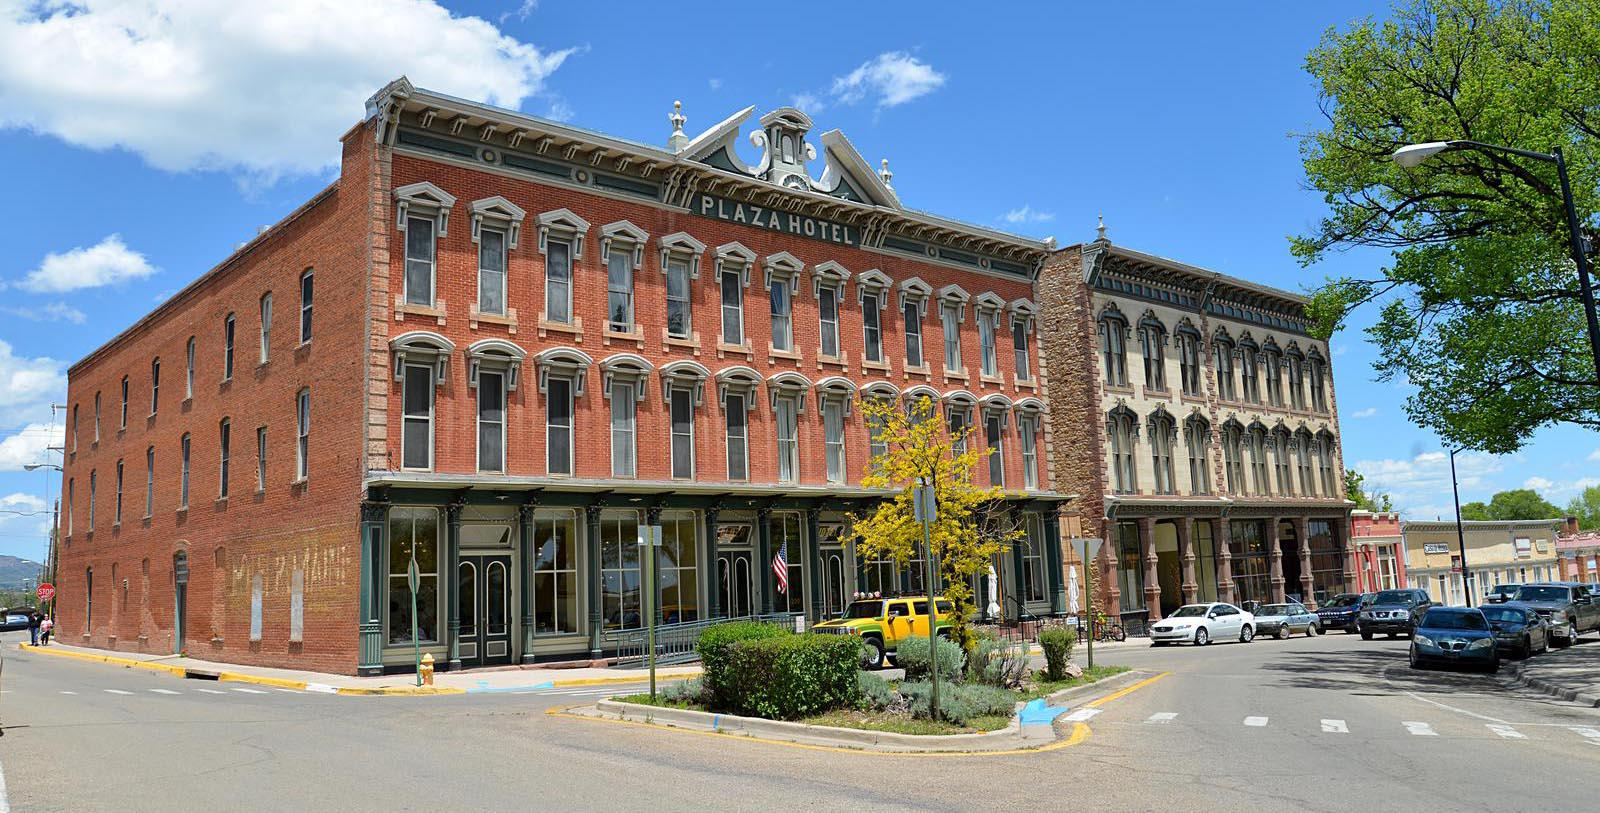 Image of Exterior Plaza Hotel 1882, 1882, Member of Historic Hotels of America, in Las Vegas, New Mexico, Explore